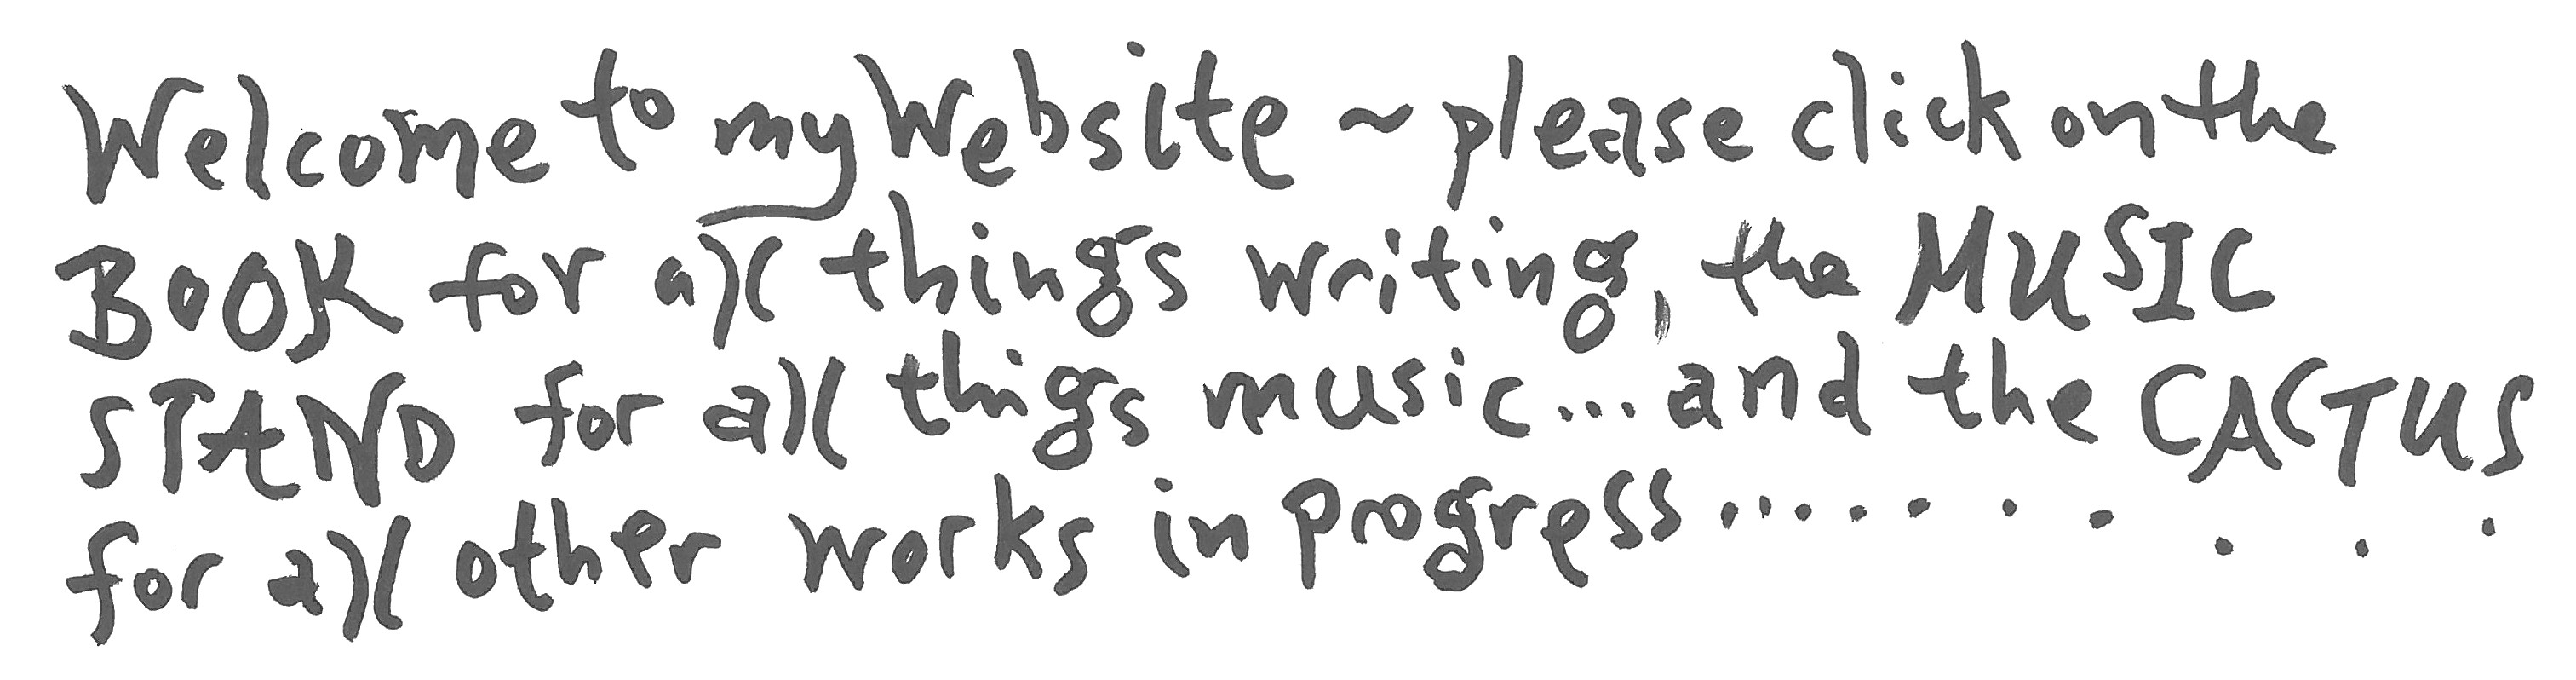 Welcome to my website. Please click on the BOOK for all things writing, click the MUSIC STAND for all things music, and the CACTUS for all my other works in progress.